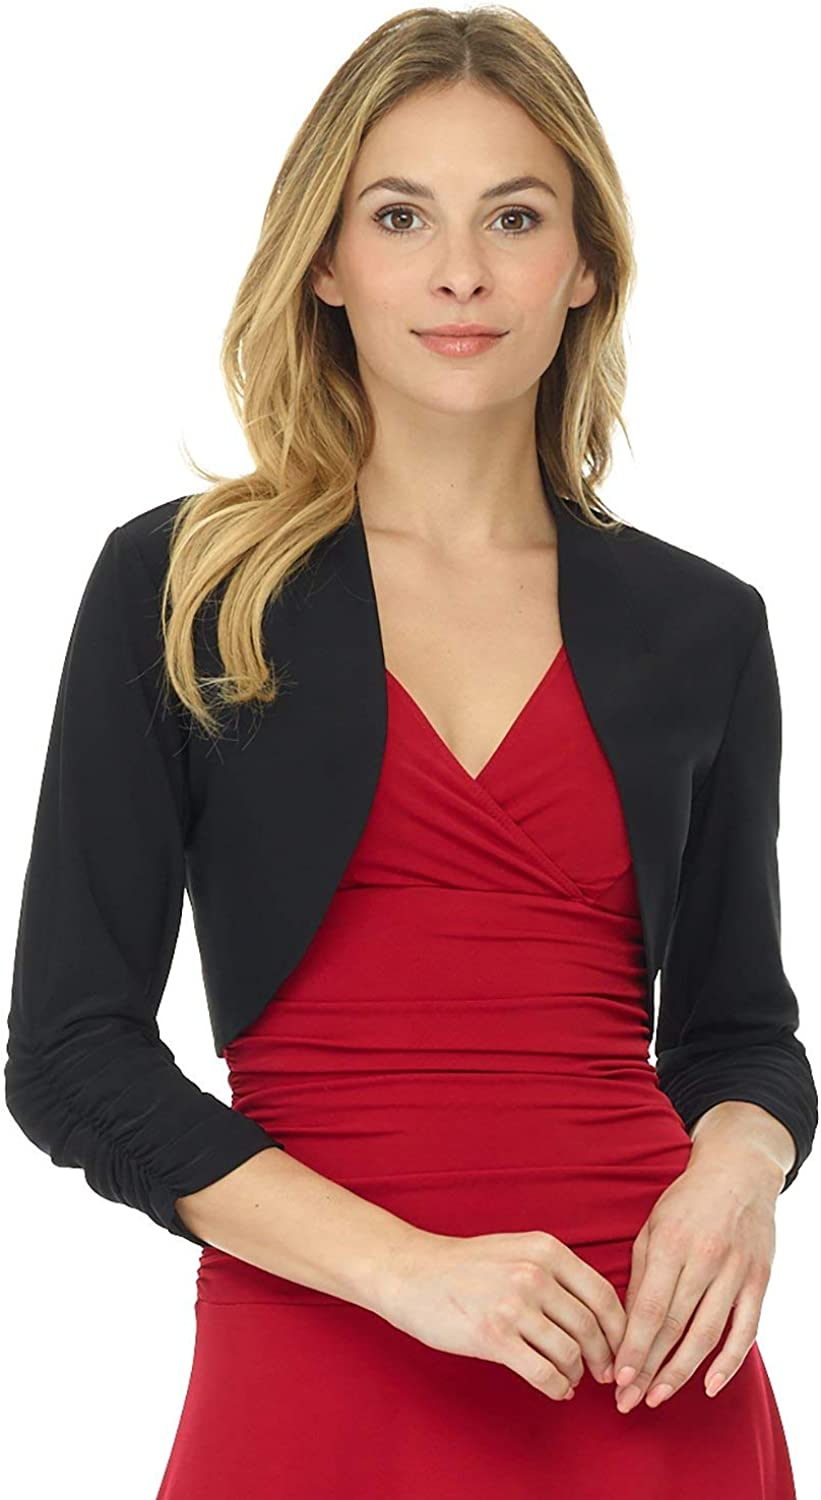 Rekucci Women's Chic Soft Knit Stretch Bolero Shrug with Ruched Sleeves